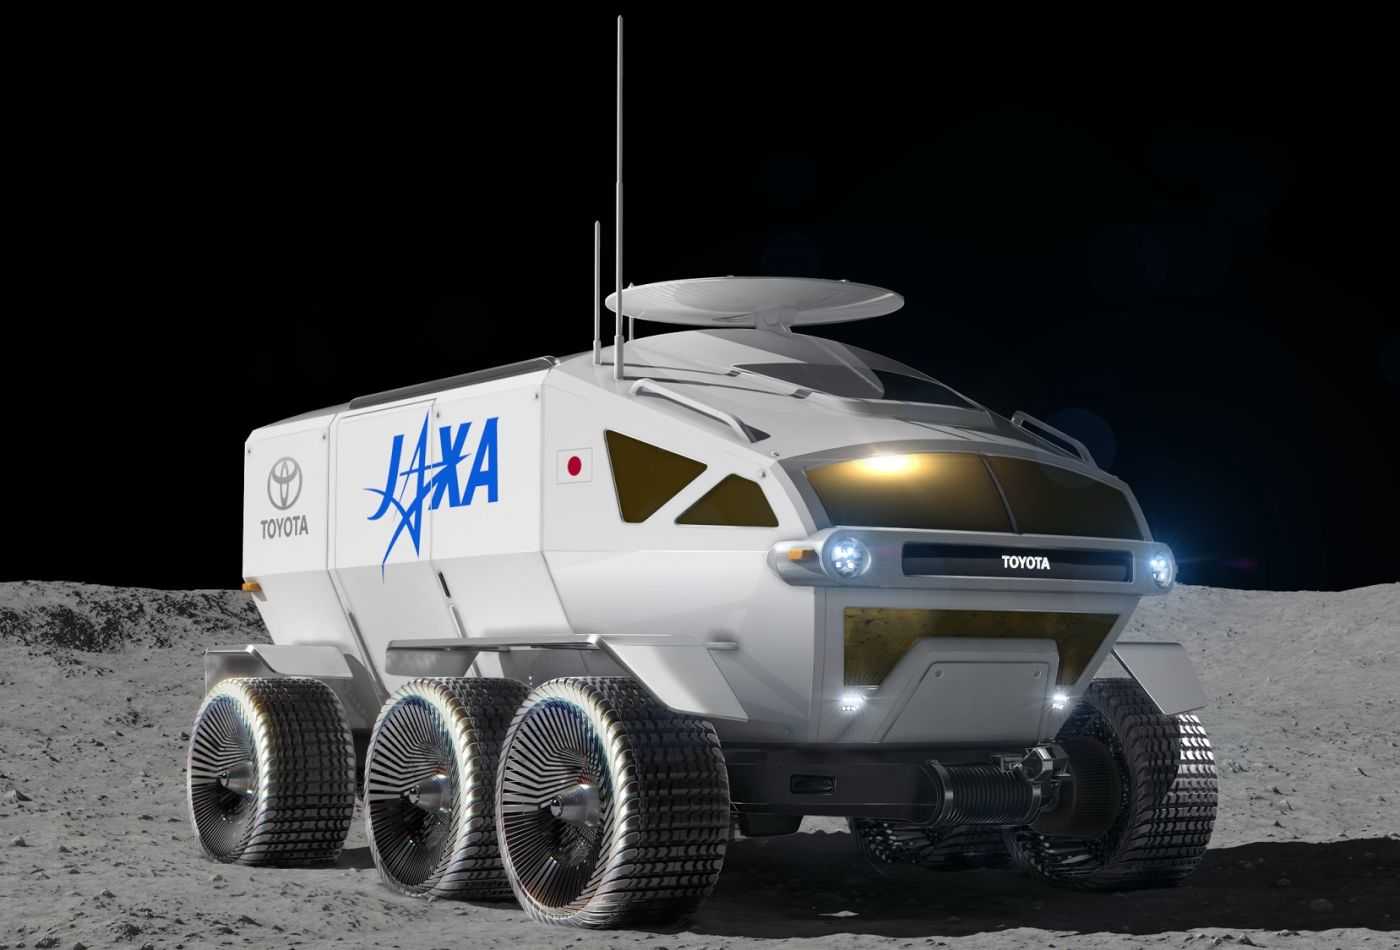 As a testament to the company's innovation and commitment for future mobility, Bridgestone will showcase an airless, elastic tire and wheel solution for a lunar rover at CES 2020.